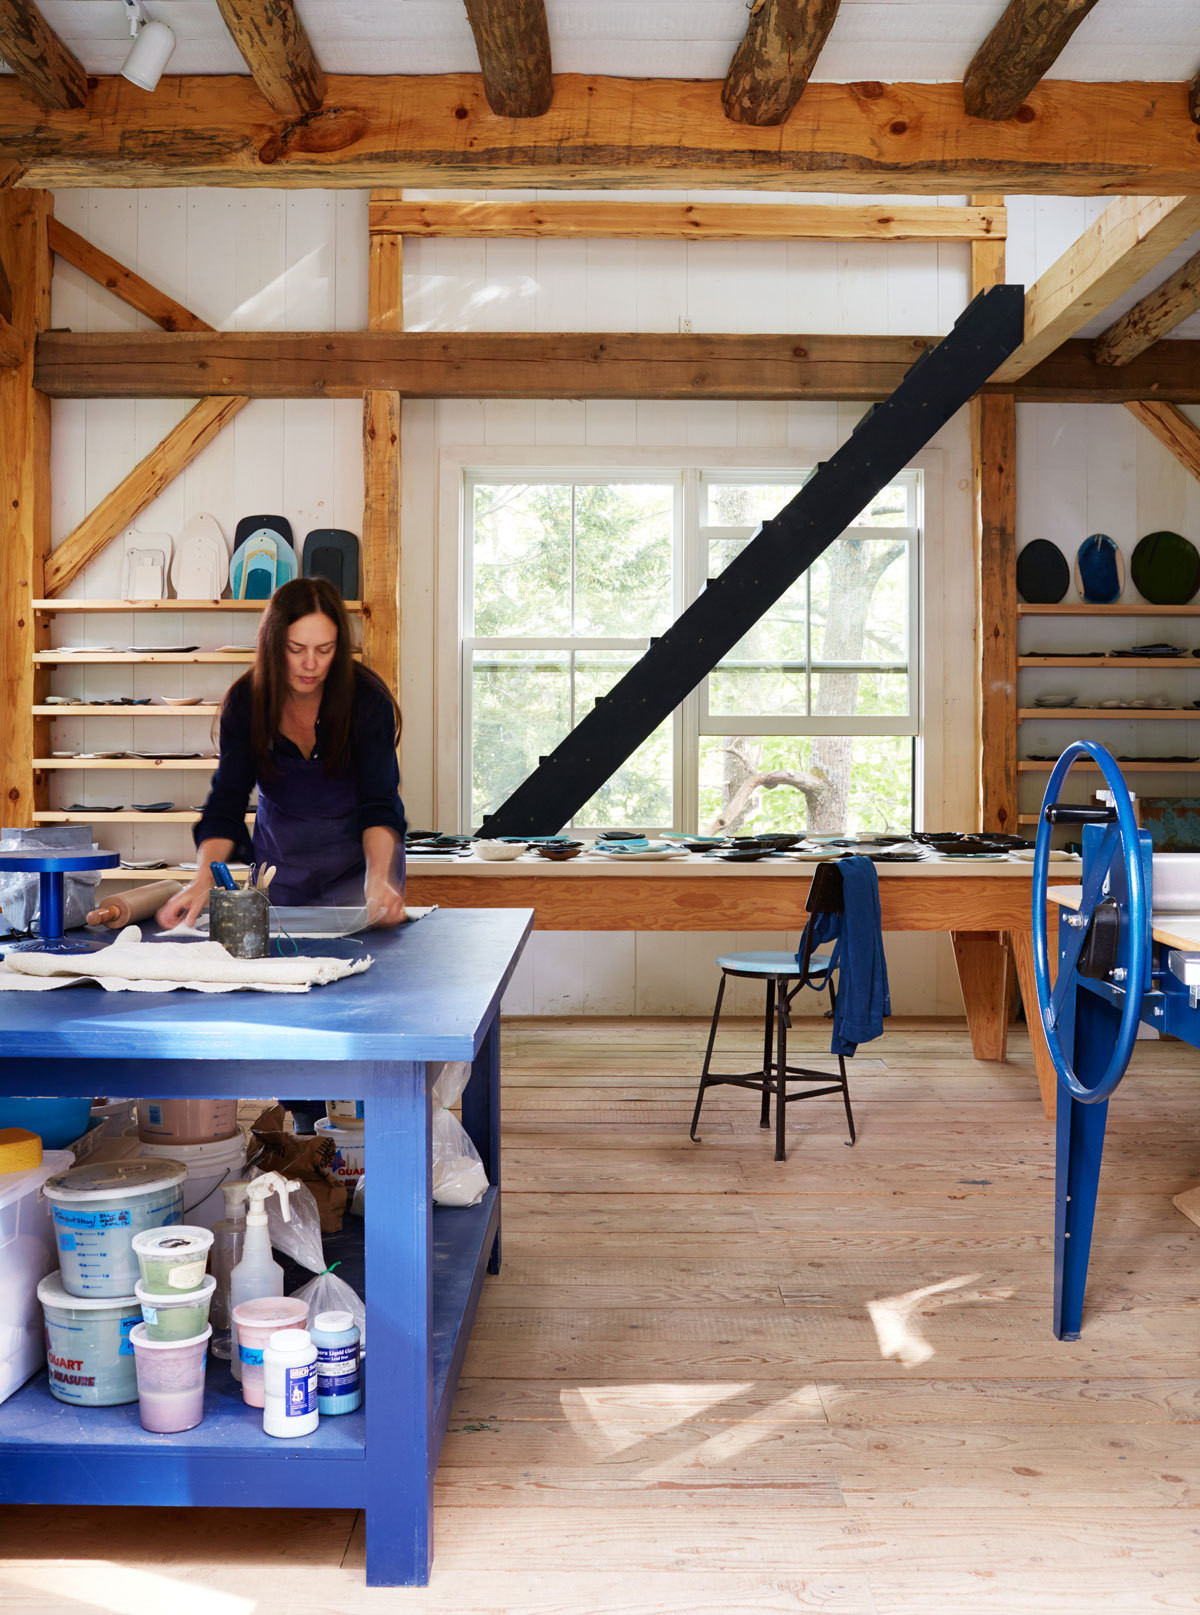 Michael at work in her barn studio, with her cobalt-blue North Star slab roller to her left and pieces from her collection lining the shelves and table behind her.